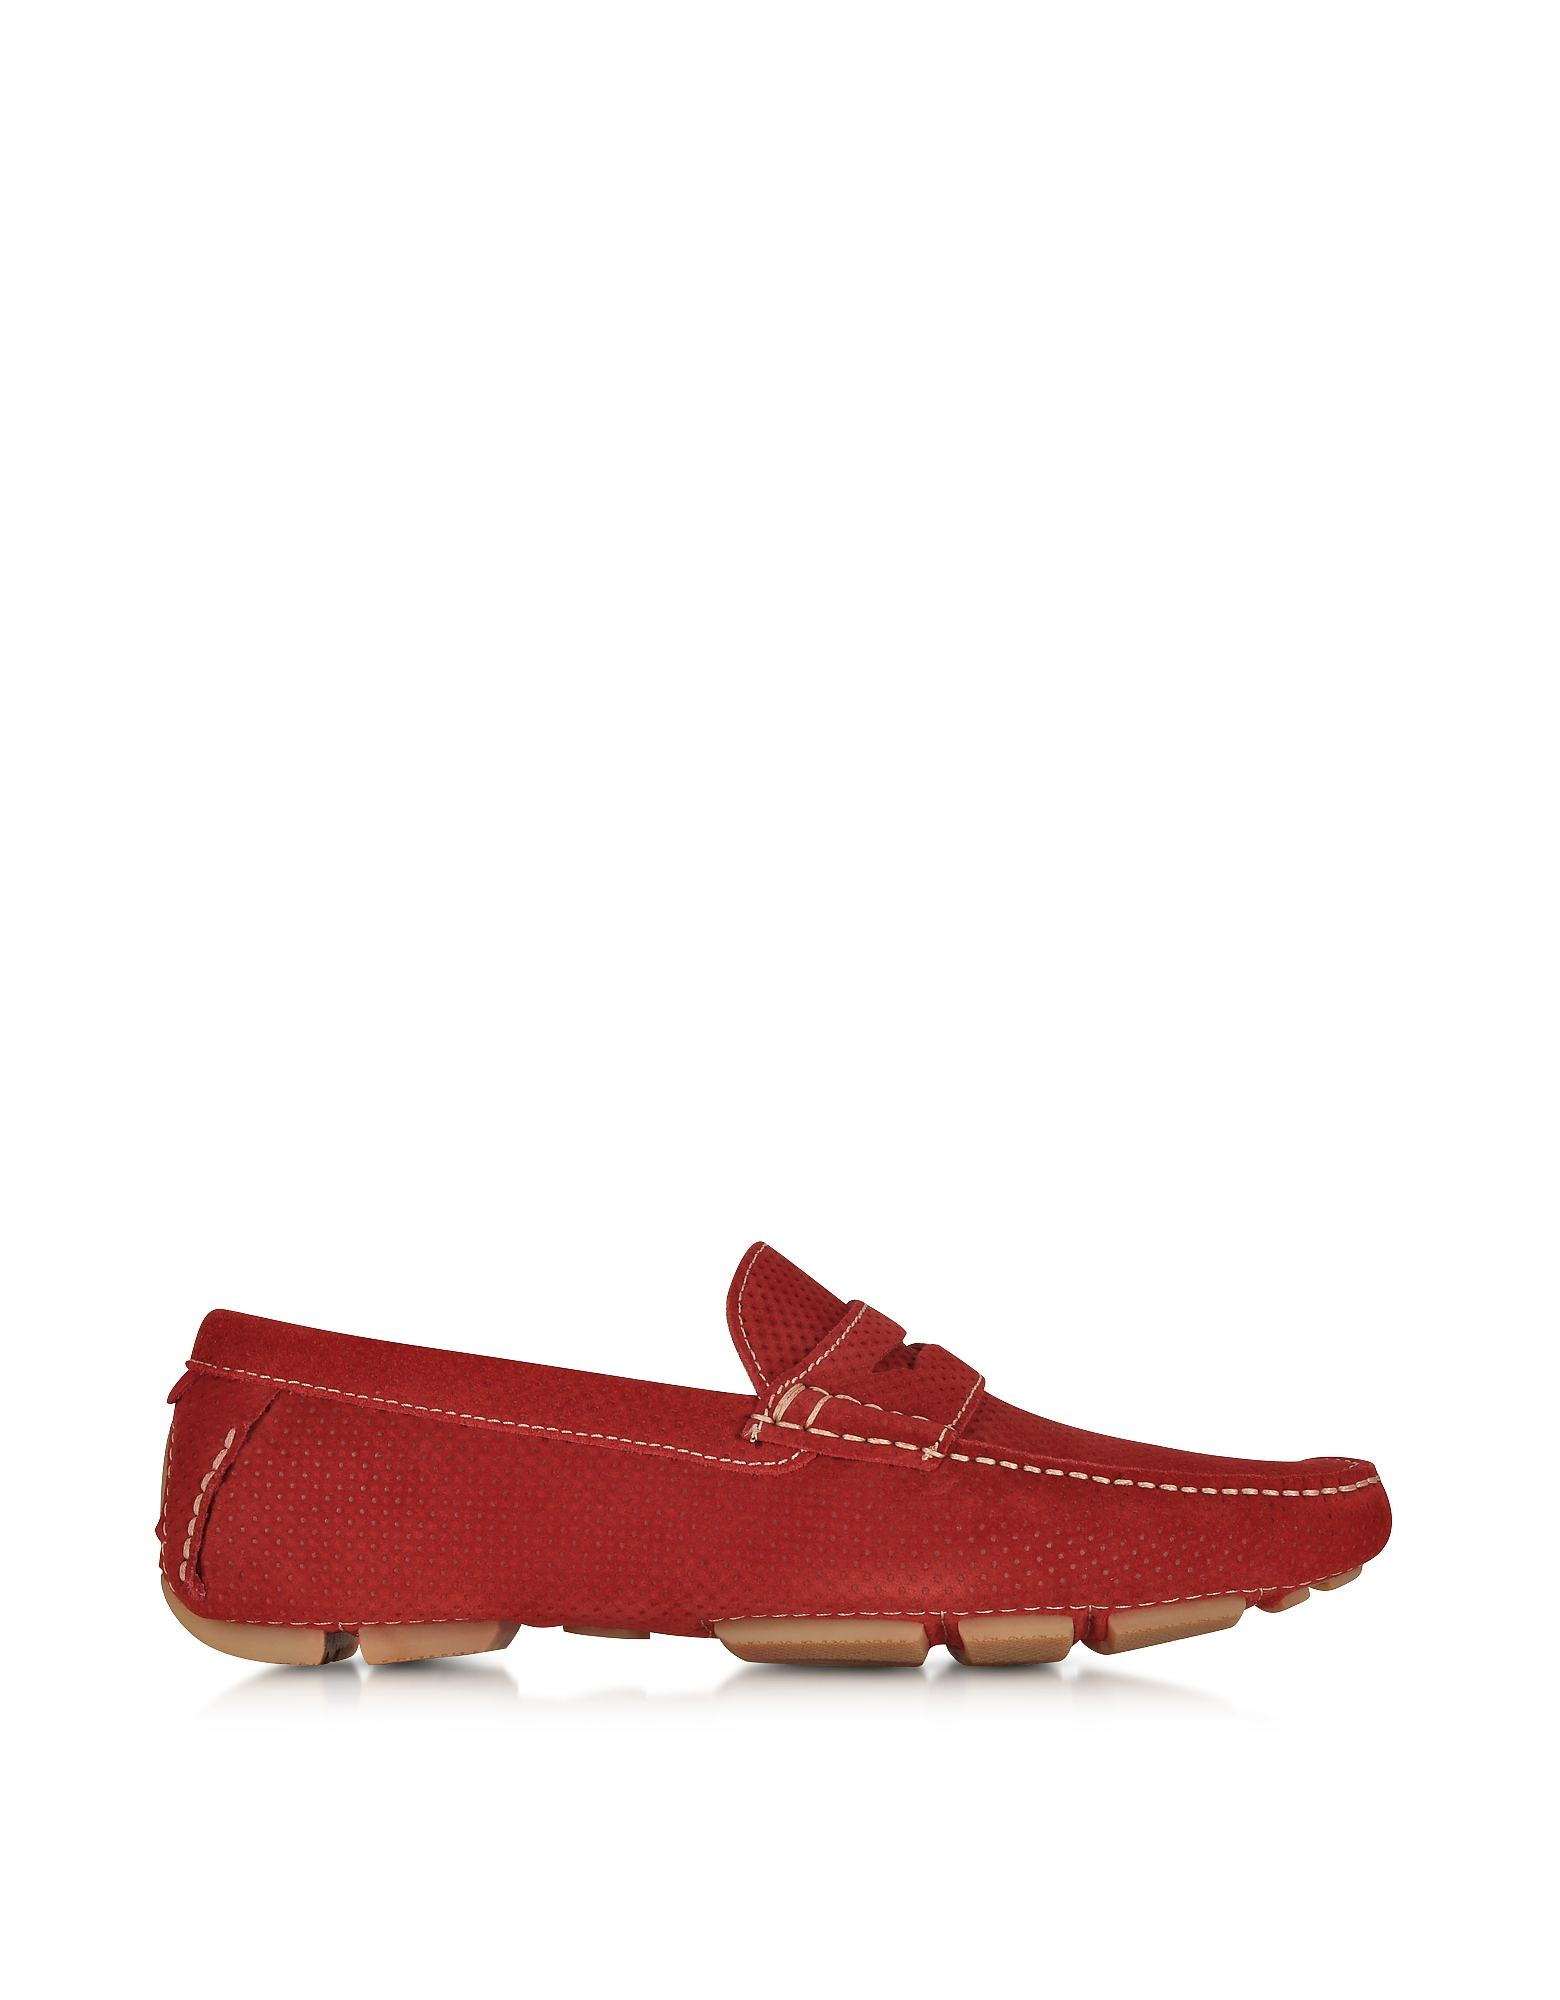 A.Testoni Shoes, Garofano Techno Suede Moccasin Shoe